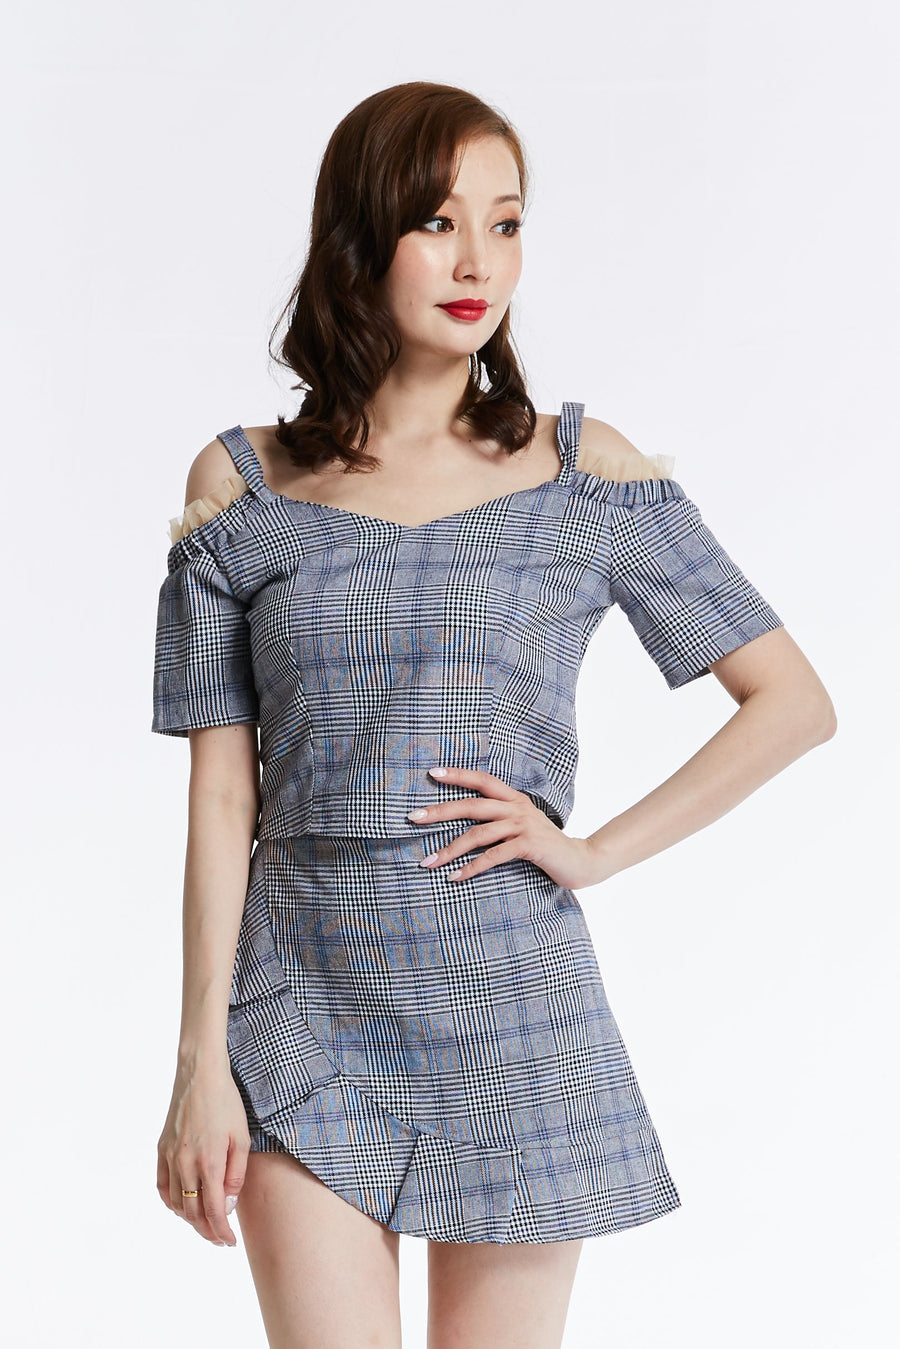 Checker Top With Skirt Pant Set 0828 - Ample Couture